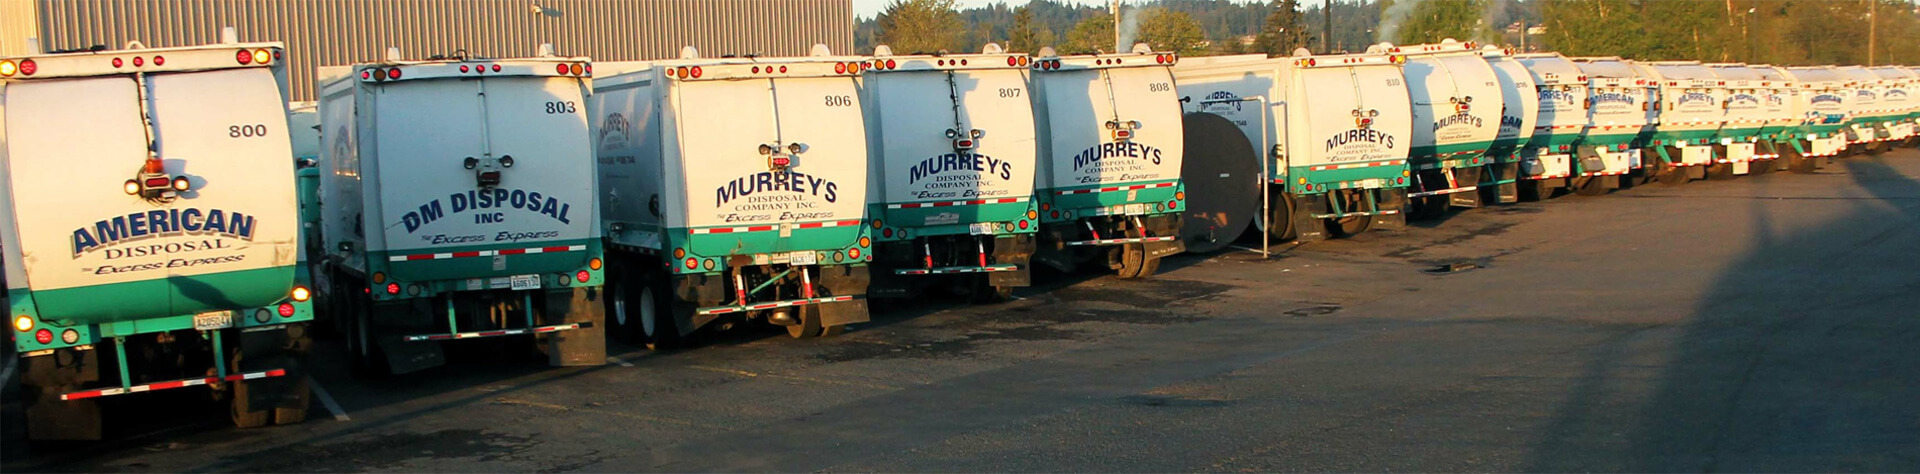 Waste Connections - Murrey Disposal waste hauling trucks.